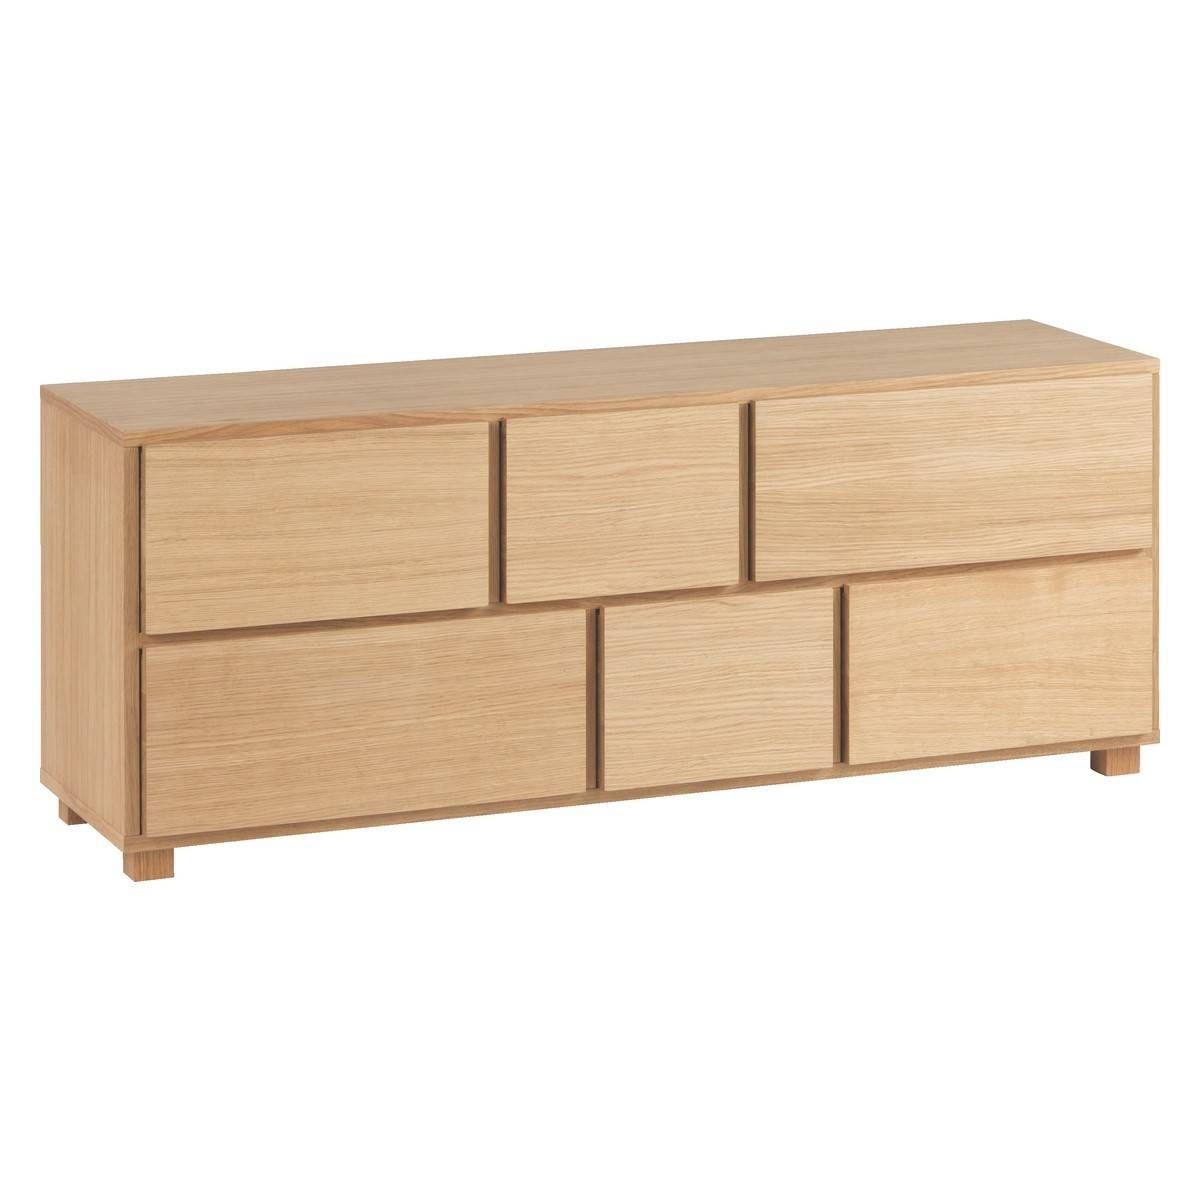 Hana Ii Oiled Oak 6 Drawer Low Wide Chest | Buy Now At Habitat Uk In Low Wide Sideboards (View 4 of 15)